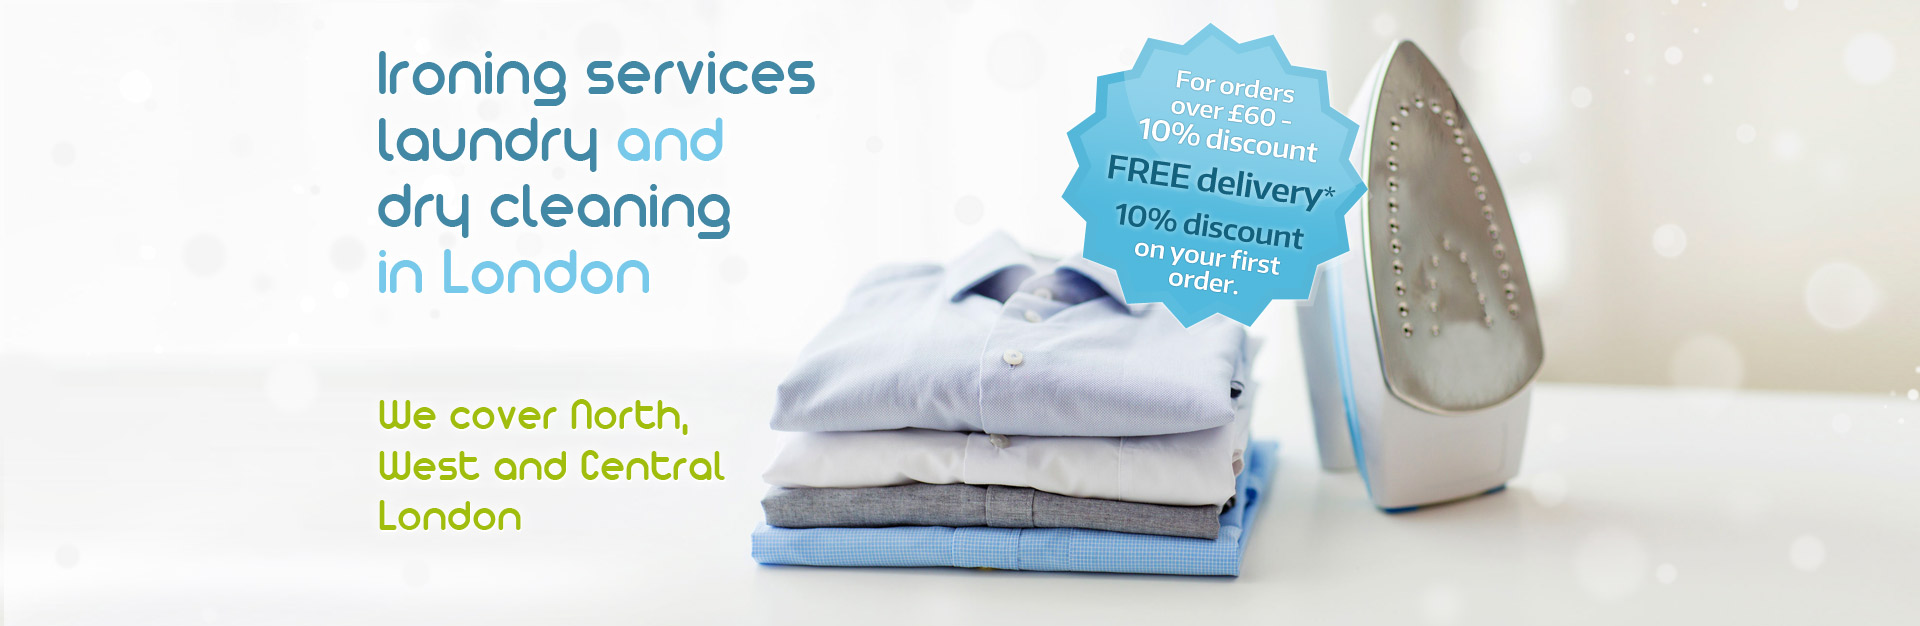 Goironing | 07703 844 462 | Local Ironing Service in North, West and Central London